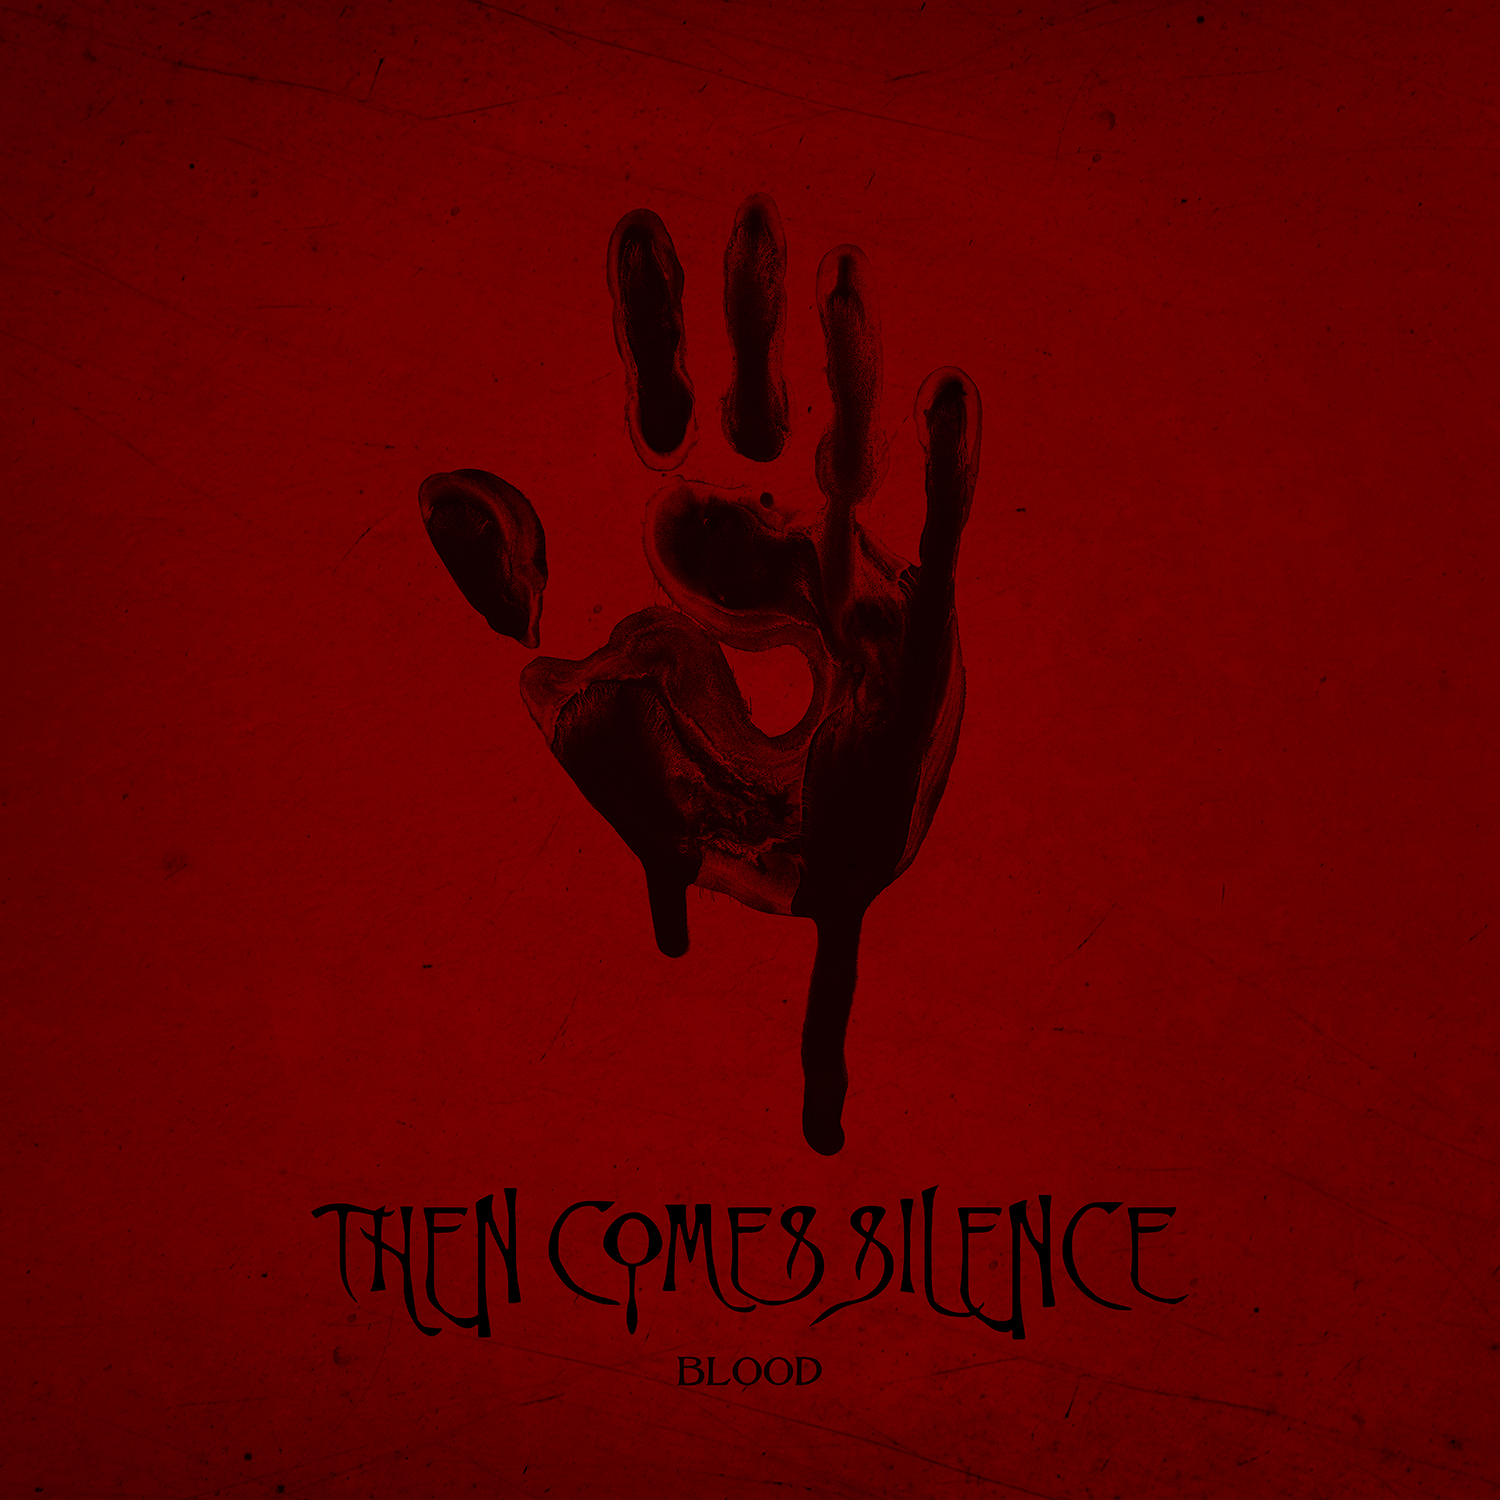 News – Then Comes Silence